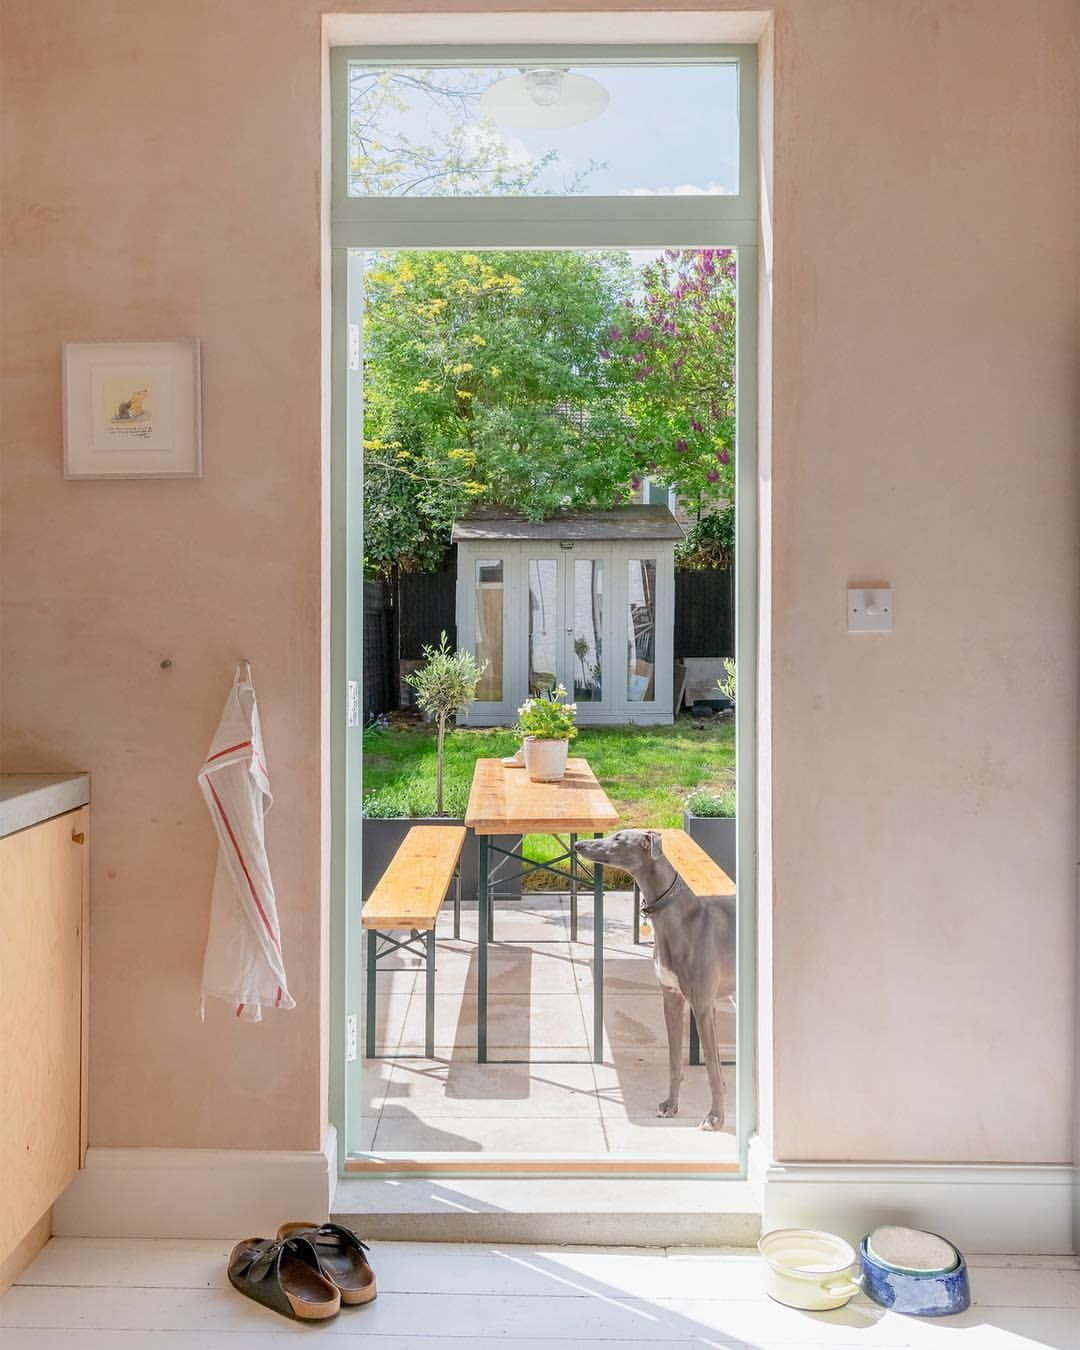 A charming al fresco dining space where we wouldn't mind